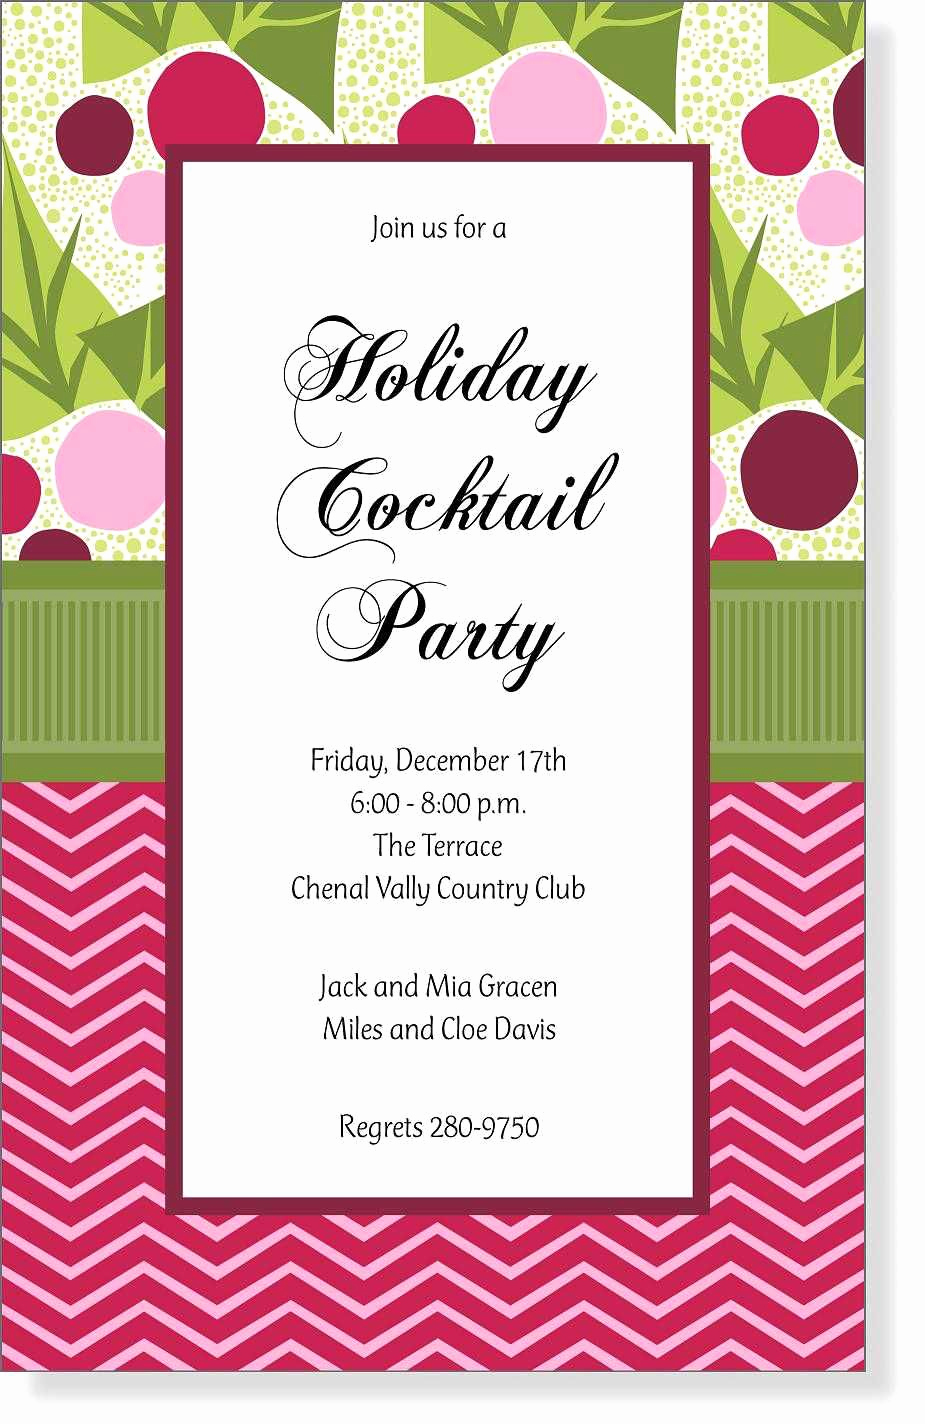 Open House Invitation Template Beautiful Christmas Open House Invitation Wording